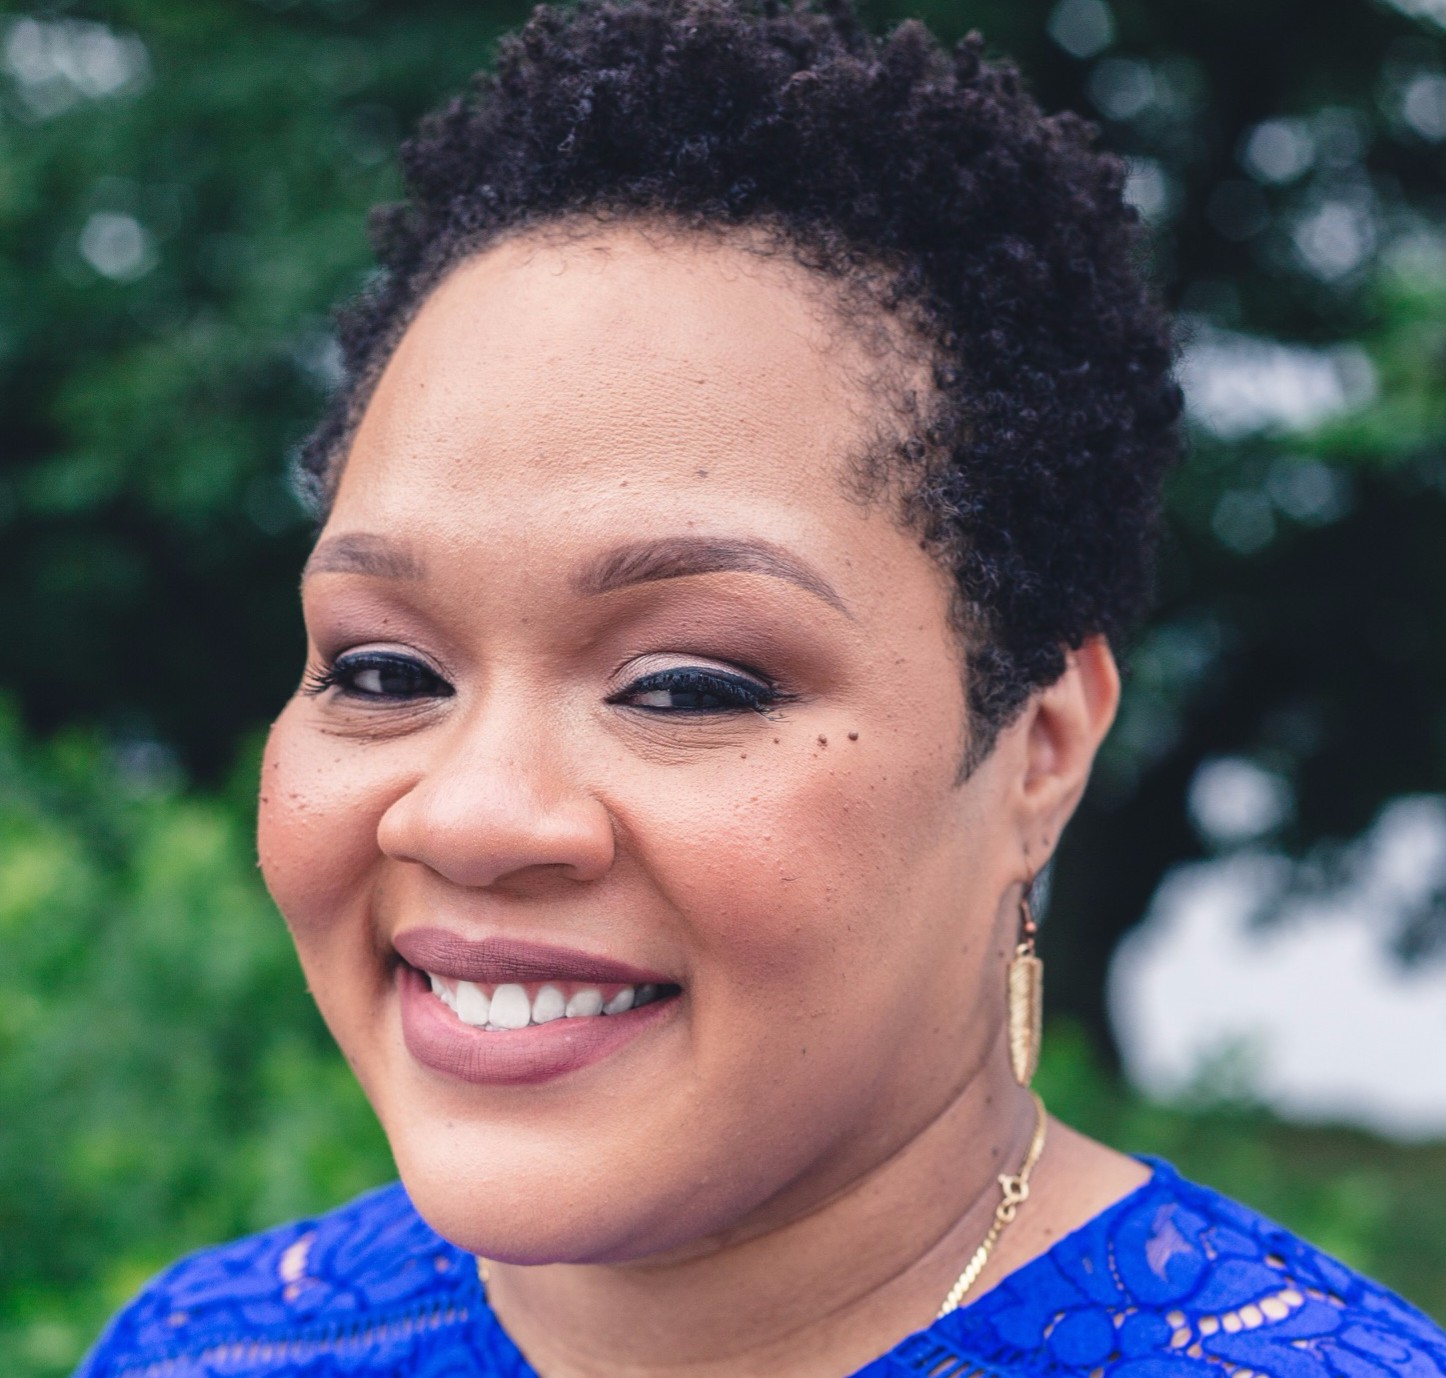 Yamiche Alcindor is a New York Times reporter. She has covered a variety of political issues. Photo courtesy Yamiche Alcindor.